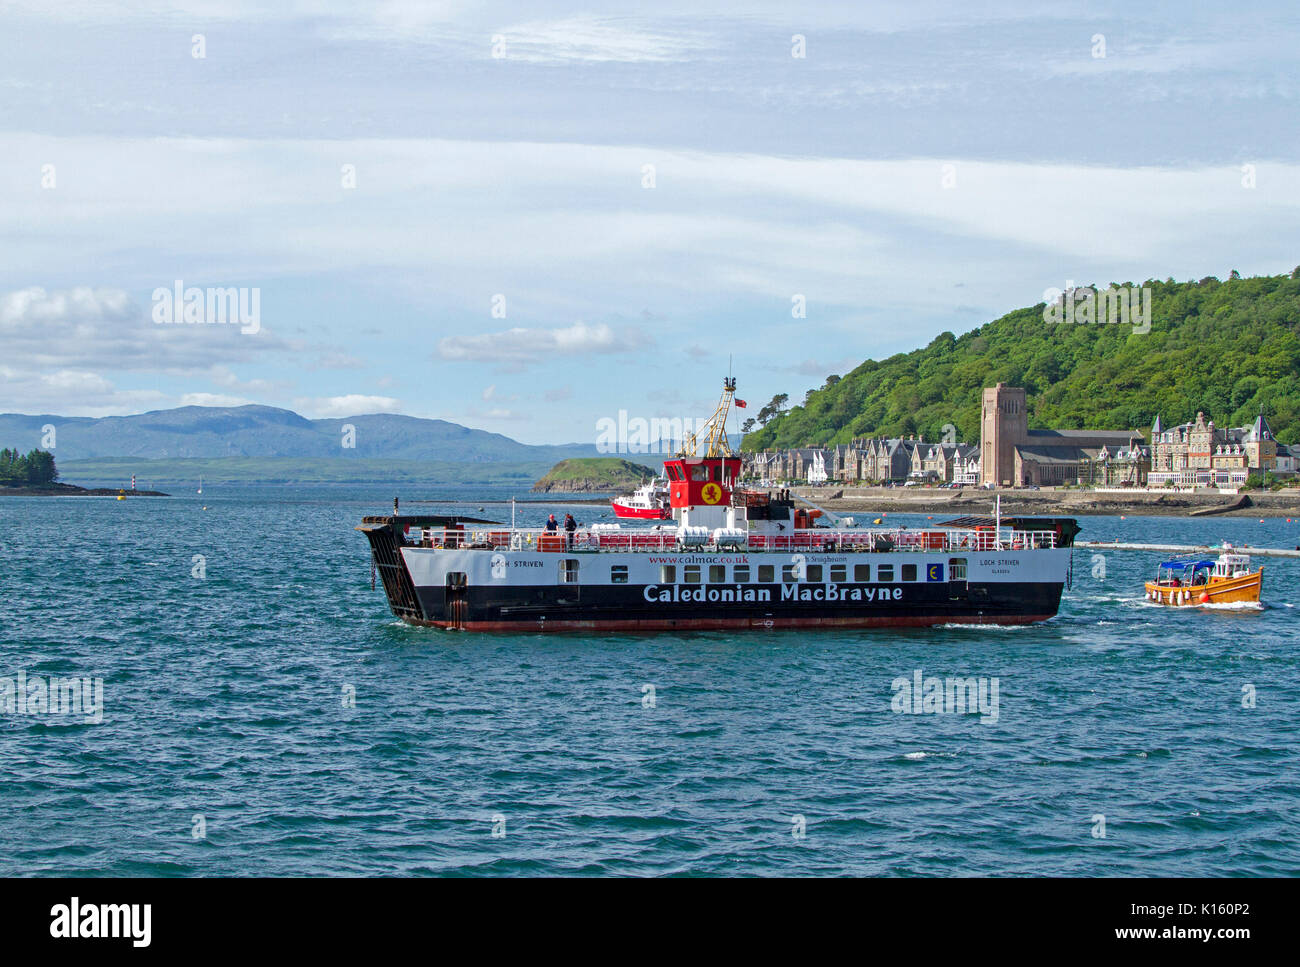 Large black and white vehicular and passenger ferry, Caledonian MacBrayne, at Oban harbour, Scotland with buildings Stock Photo